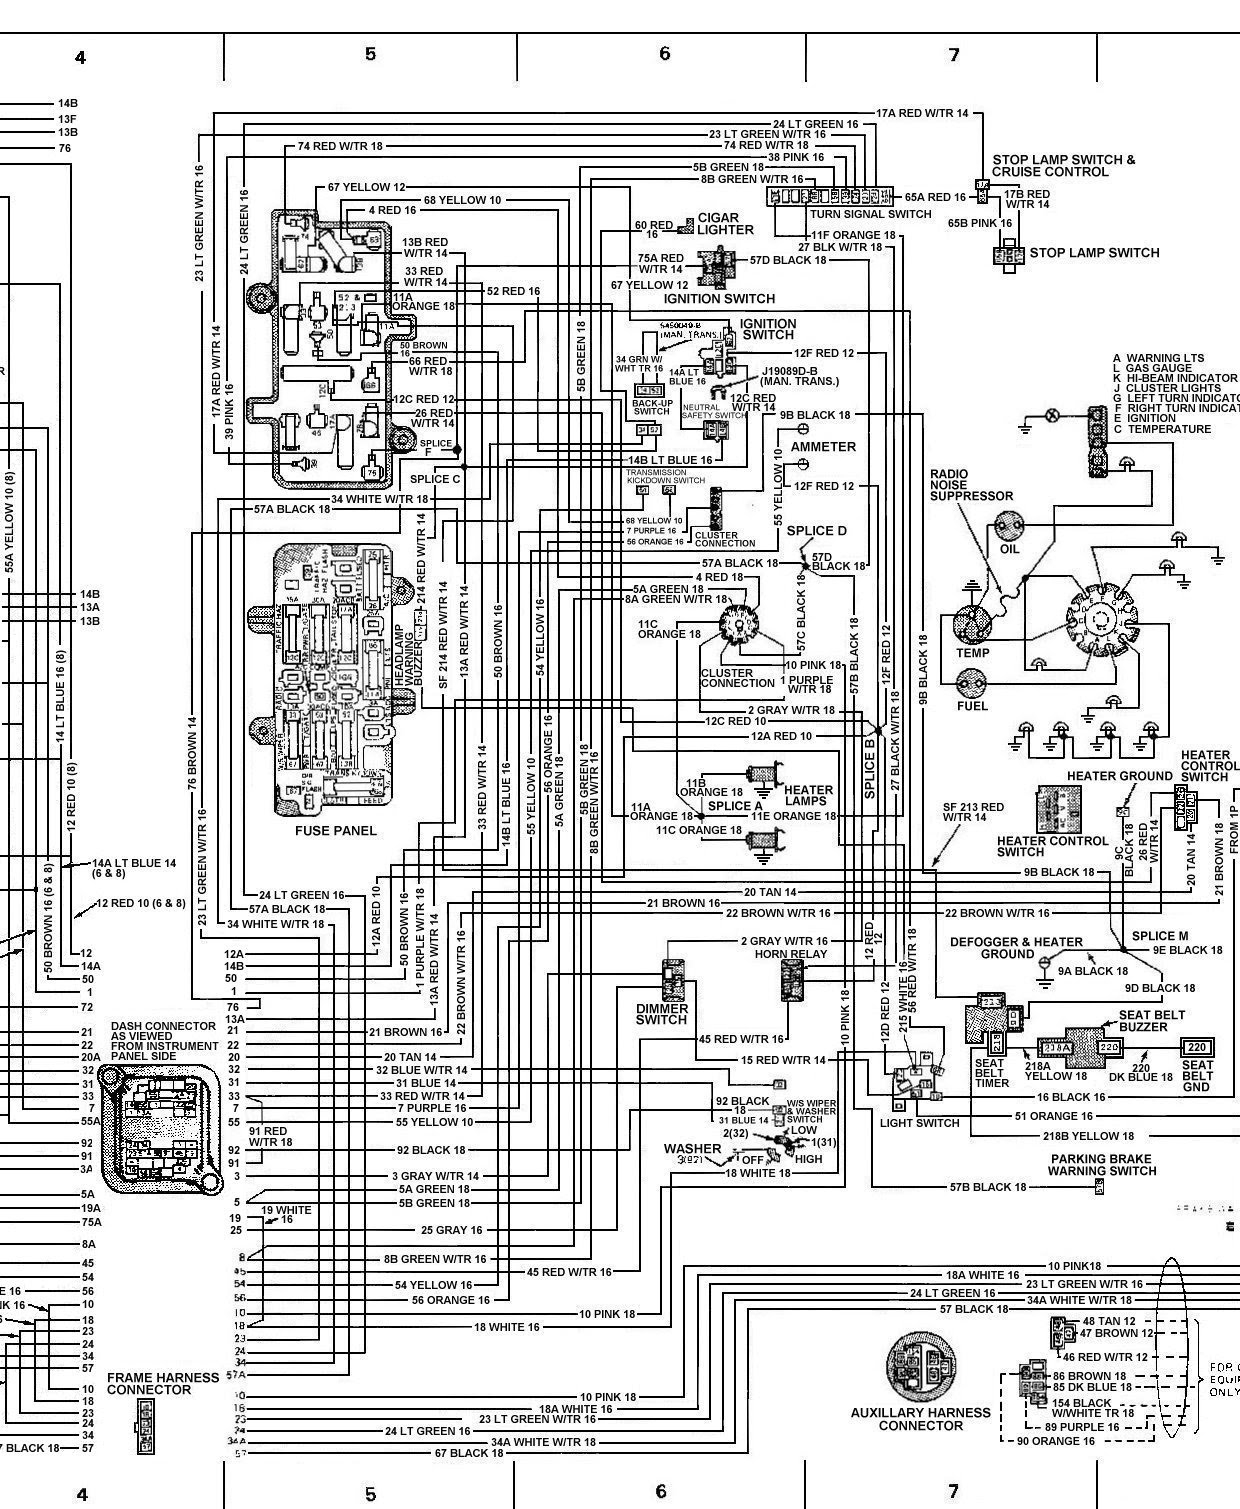 Wiring Diagram For 2004 Dodge Ram 1500 | Wiring Diagram - 2004 Dodge Ram 1500 Wiring Diagram